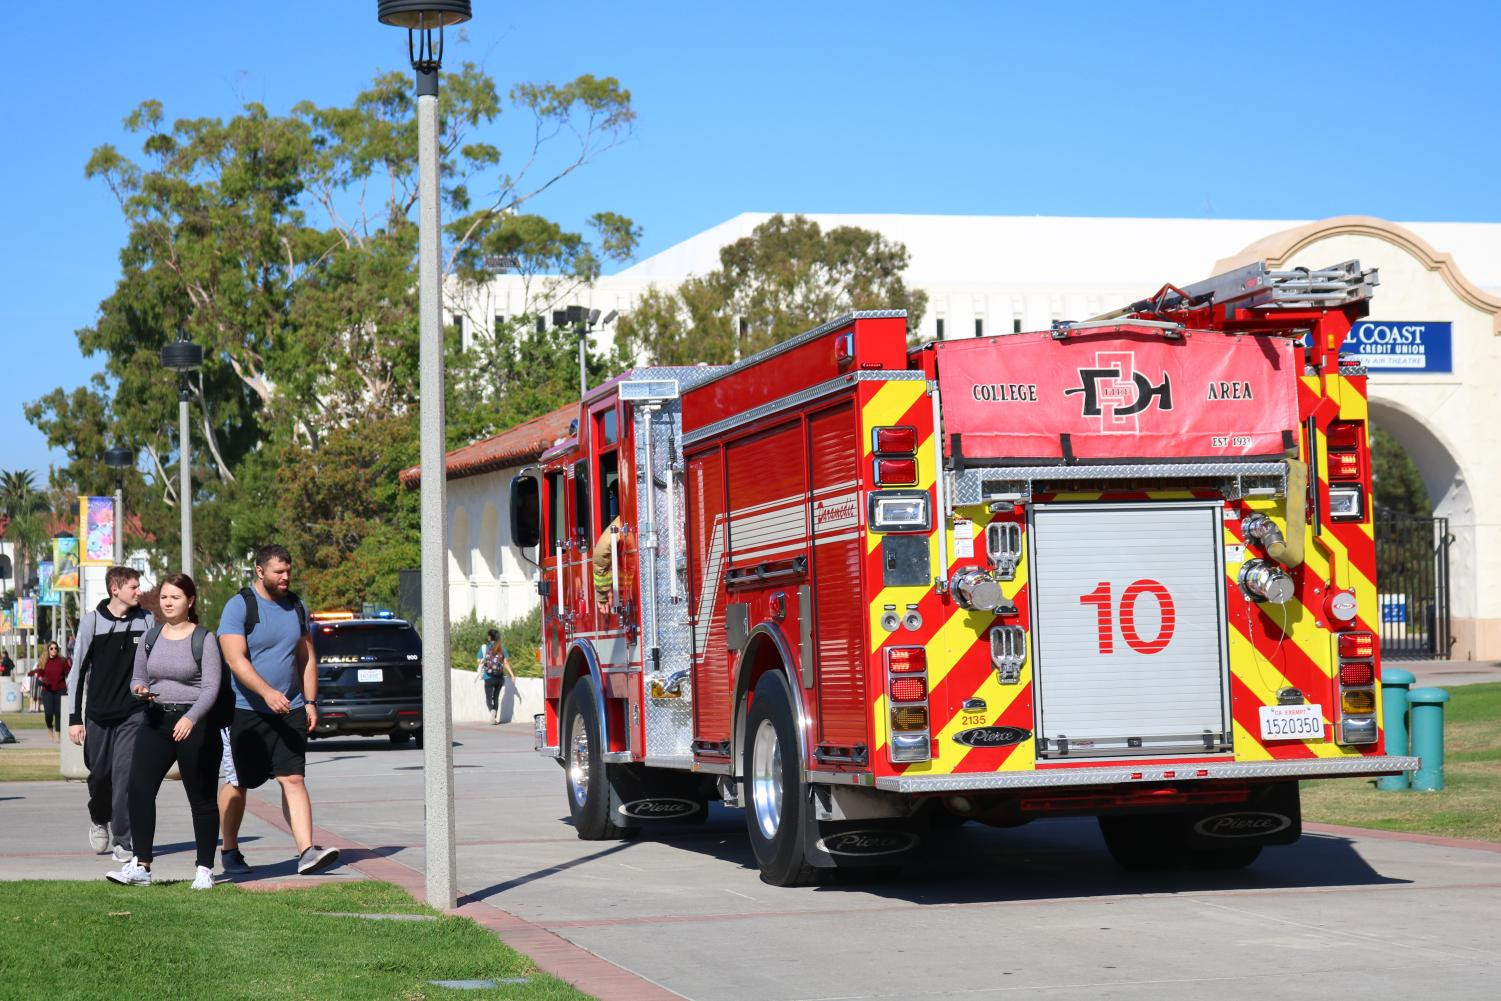 A firetruck drives along Campanile walkway around 1 p.m. on Nov. 12 during a campus power outage.